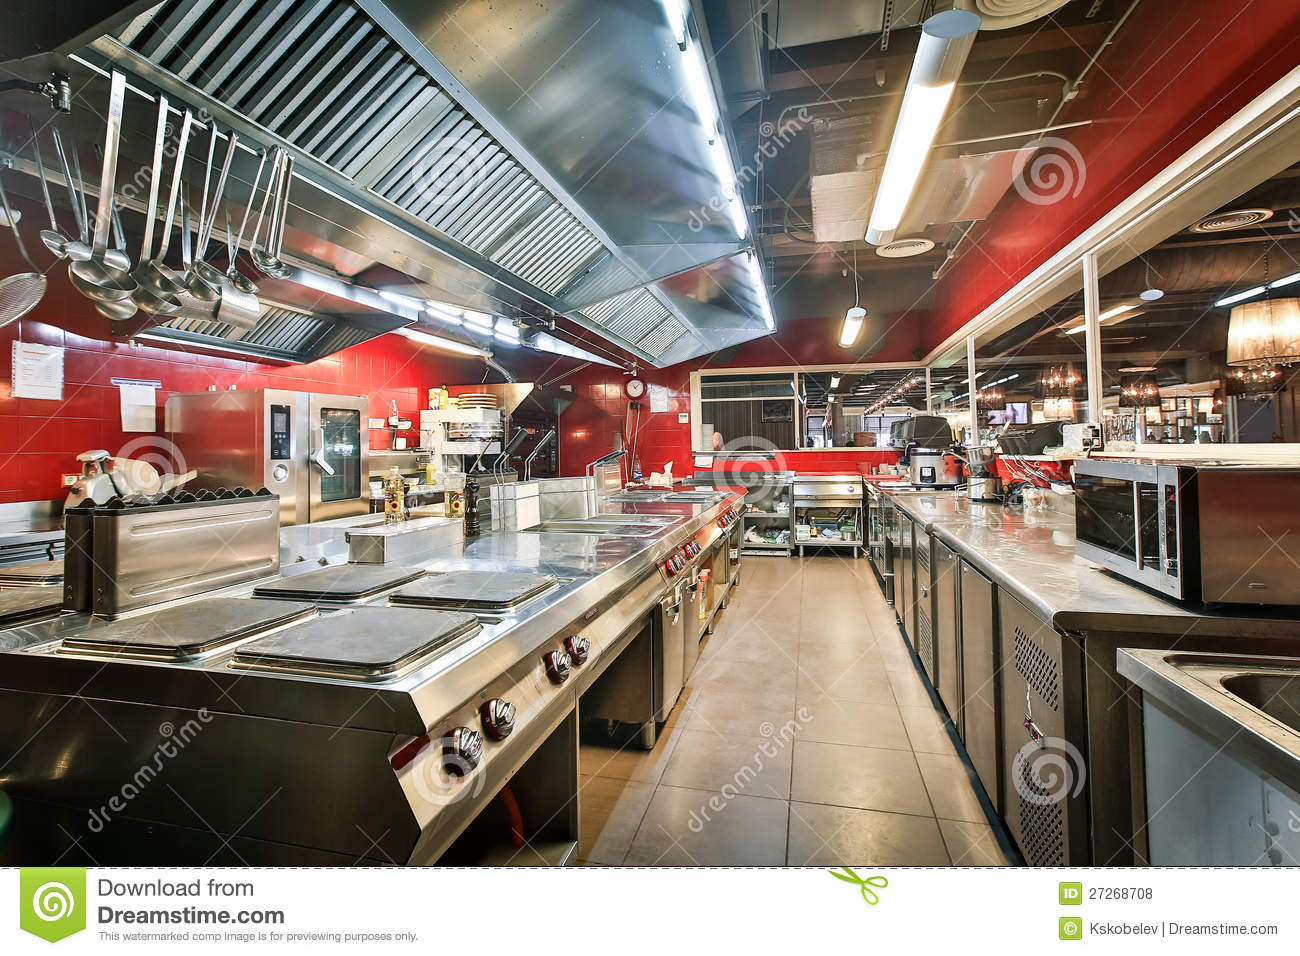 Restaurant Kitchen Photos kitchen stock photos, images, & pictures - 1,128,879 images